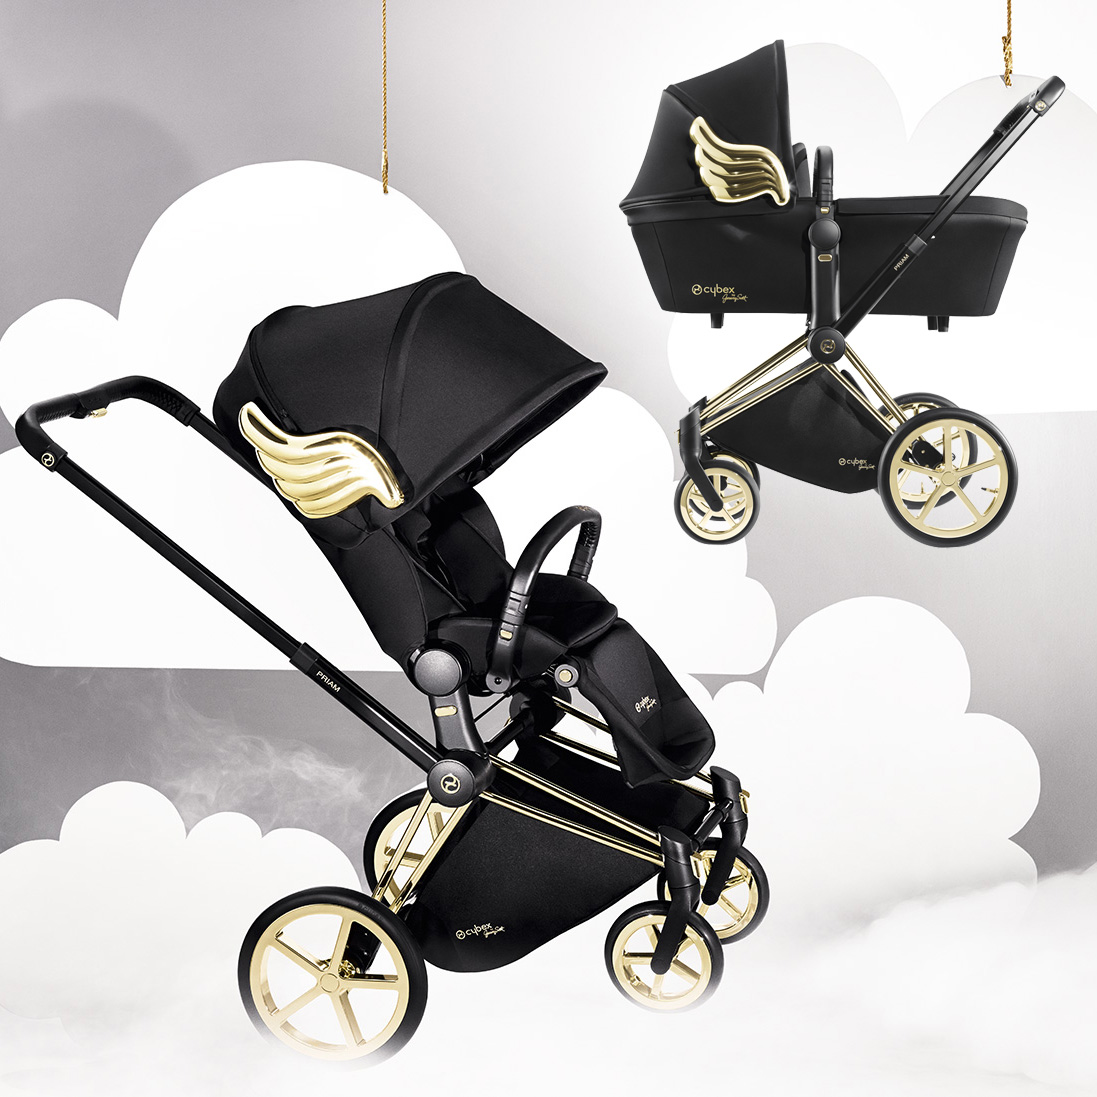 cybex kinderwagen priam jeremy scott wings sonder edition dannenfelser kinderm bel. Black Bedroom Furniture Sets. Home Design Ideas